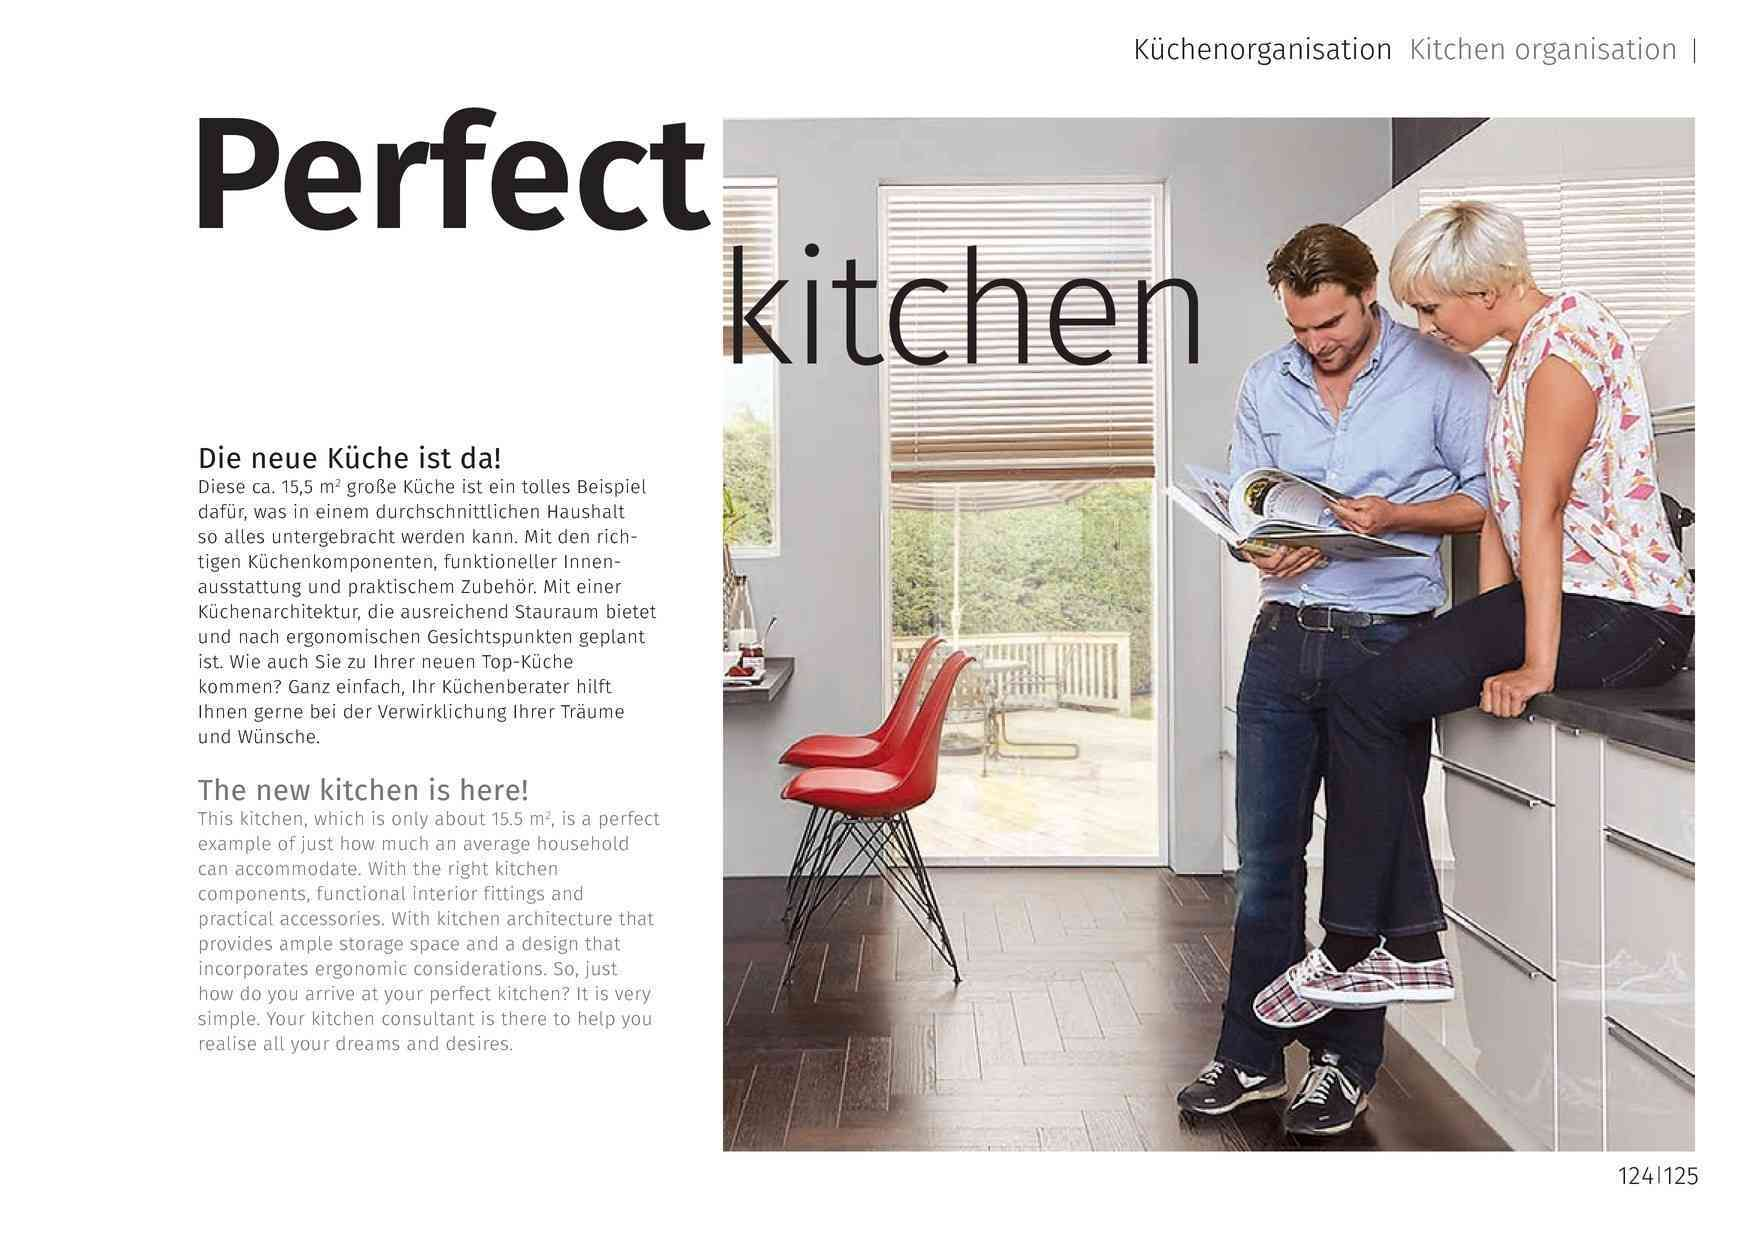 Küchenberater Kitchen Accessories Offers In Falmouth: Prices In-store, Catalogues And Store Opening Times